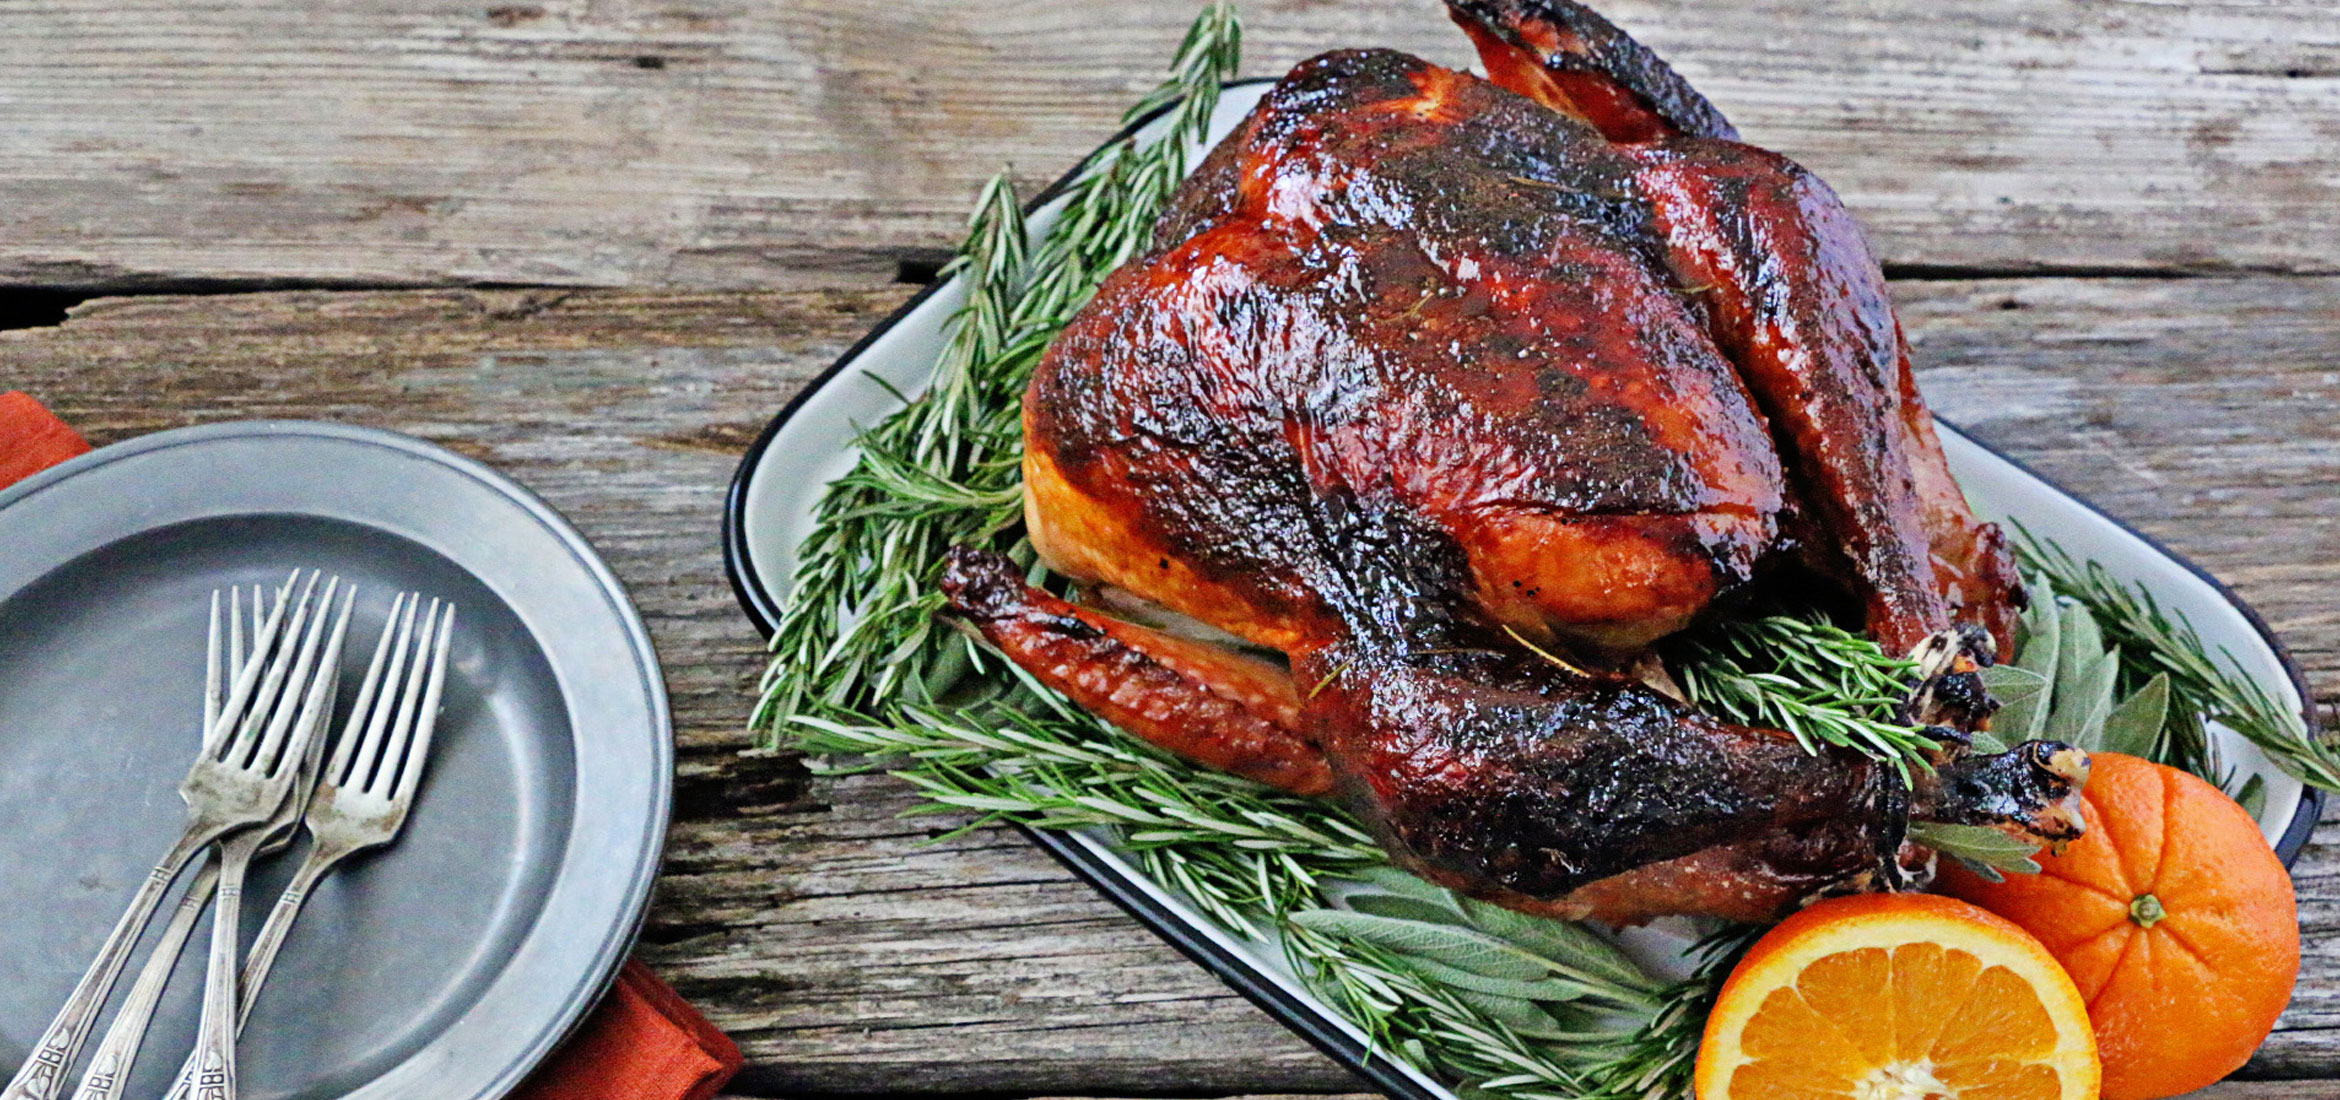 Roasted Turkey With Orange Rosemary Glaze